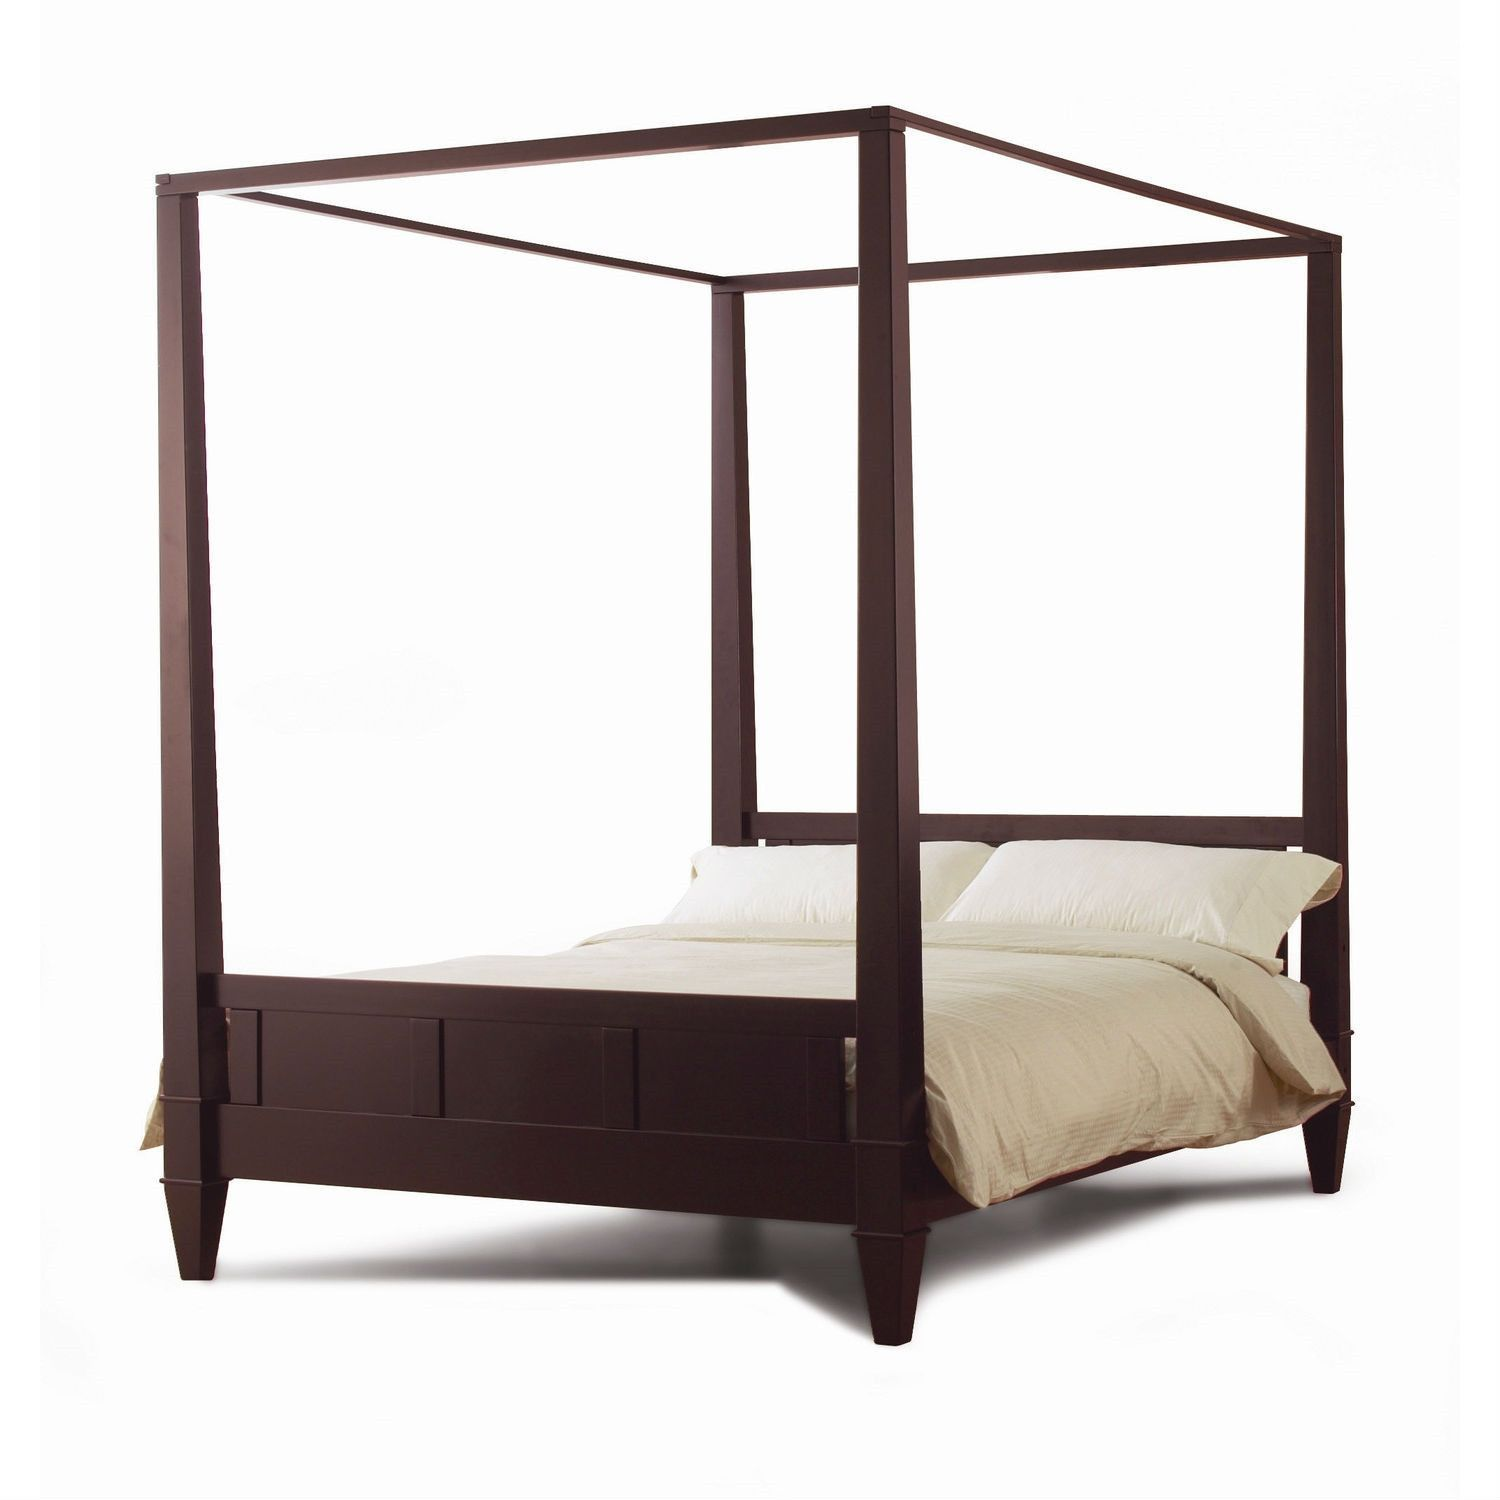 Queen Size Modern Canopy Bed Frame In Dark Brown Wood Finish